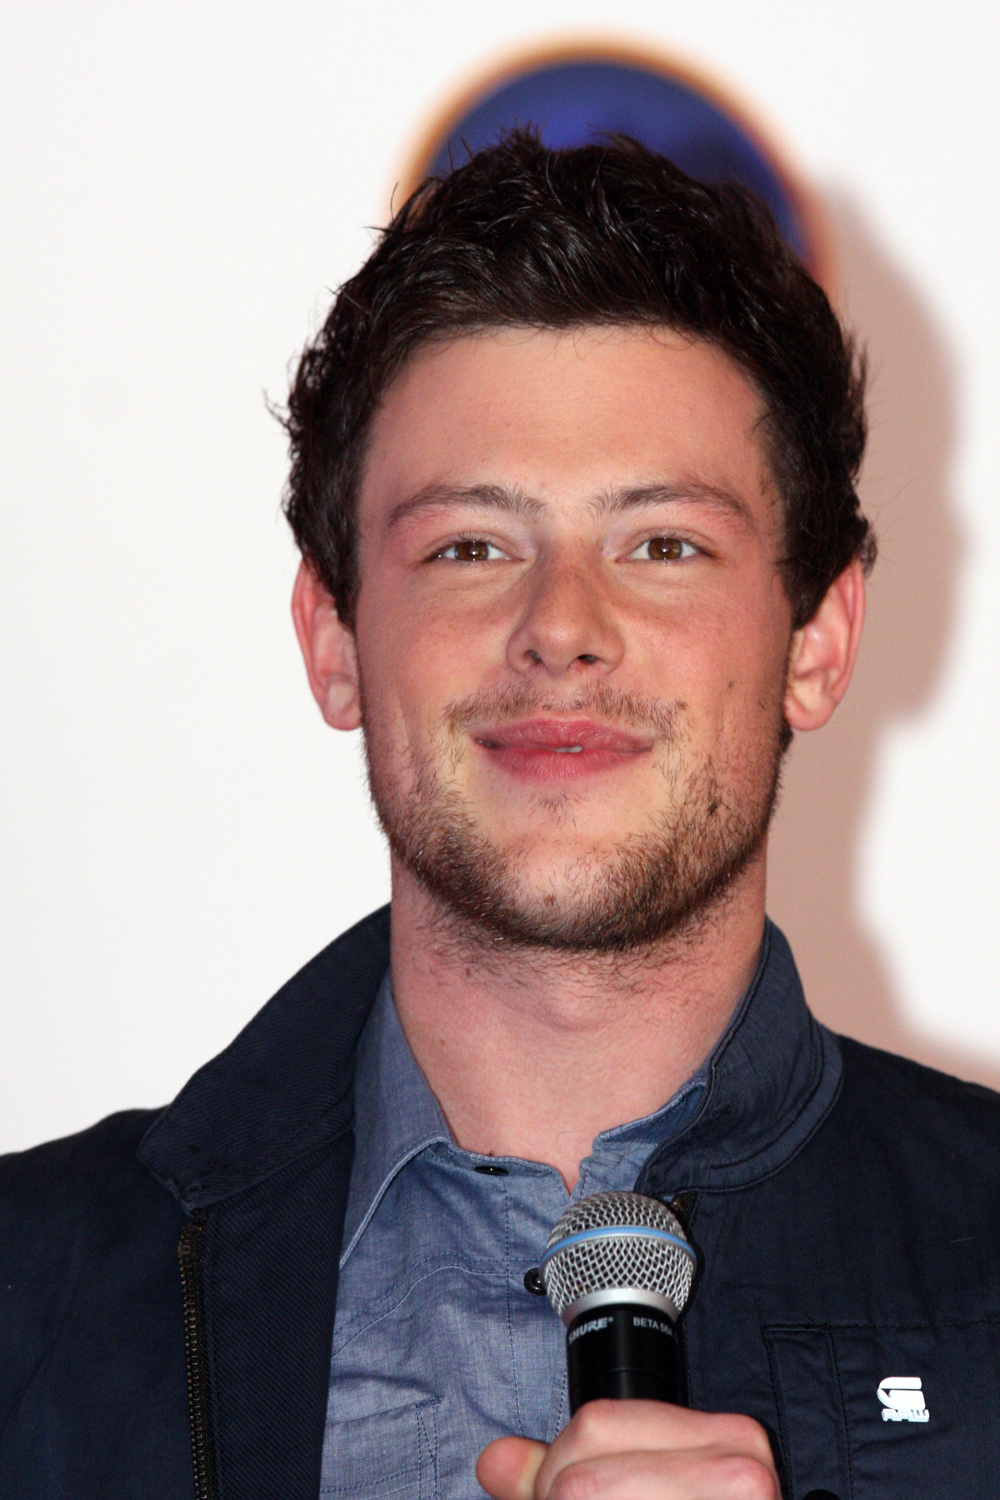 The 36-year old son of father Joe Monteith  and mother Ann McGregor  Cory Monteith in 2018 photo. Cory Monteith earned a  million dollar salary - leaving the net worth at 2 million in 2018